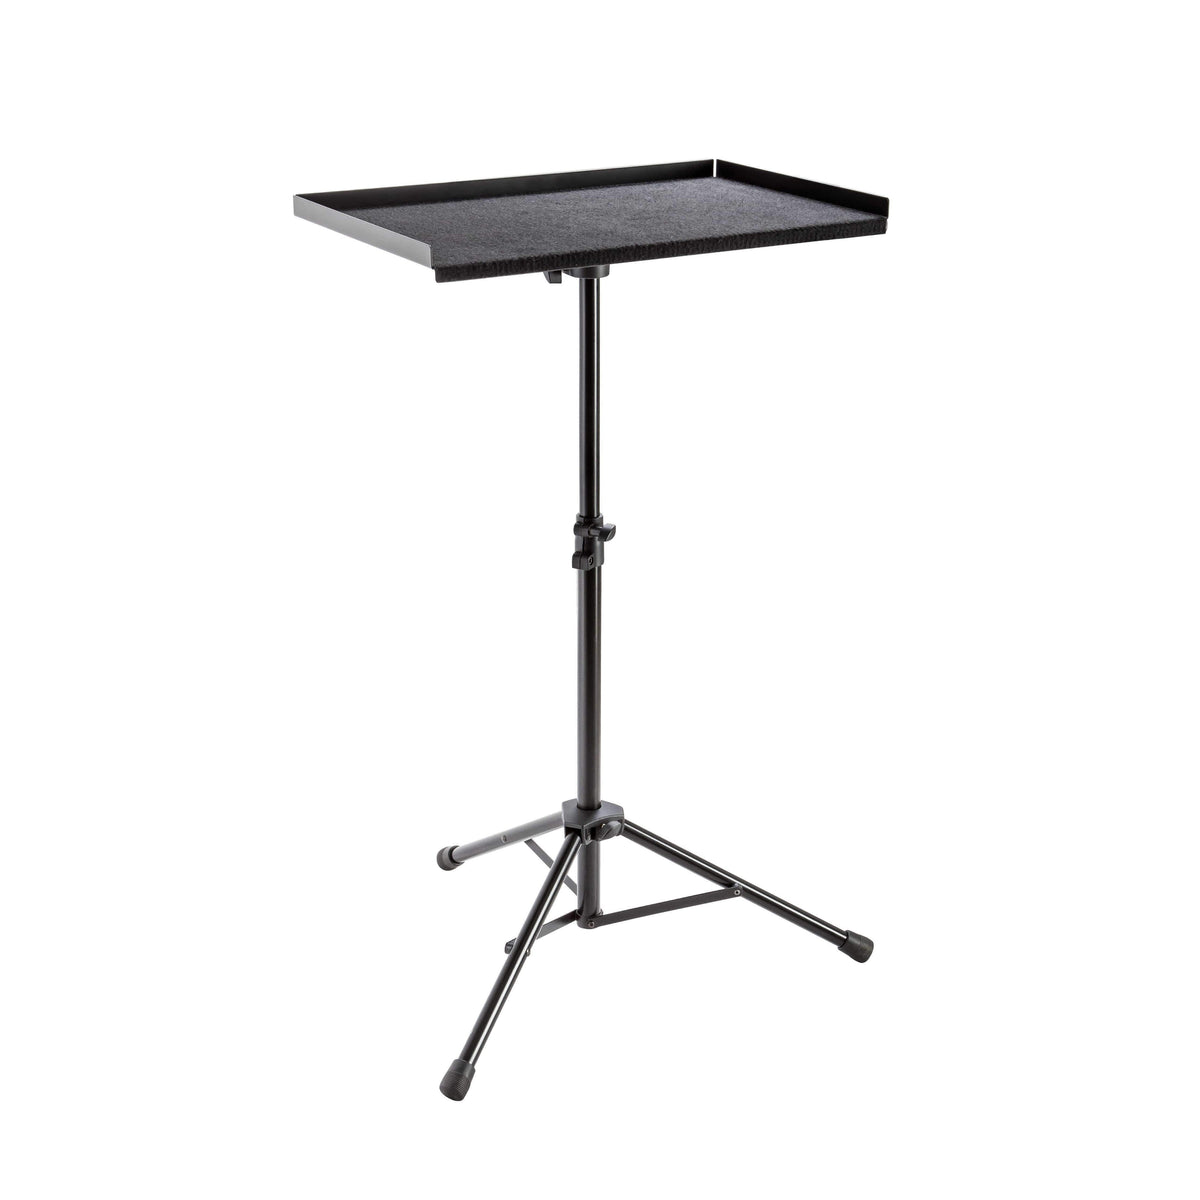 König & Meyer Accessories K&M Percussion Table -Black